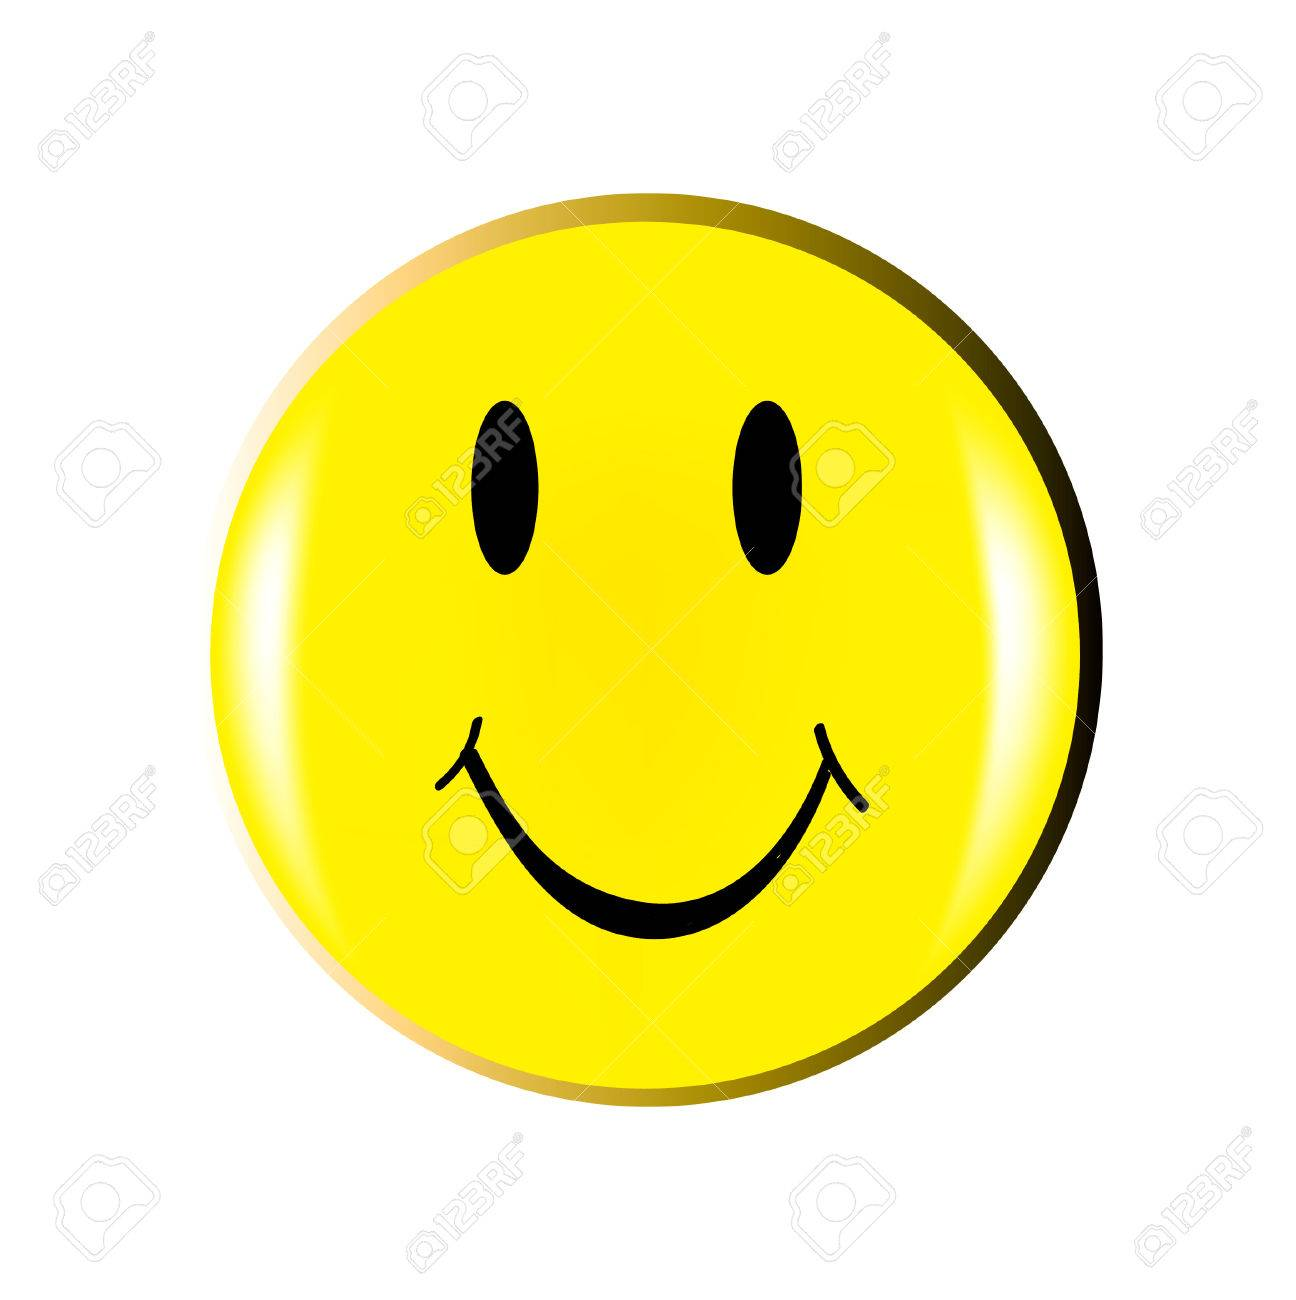 Nice illustration of happy face isolated on white background nice illustration of happy face isolated on white background 5999832 voltagebd Gallery